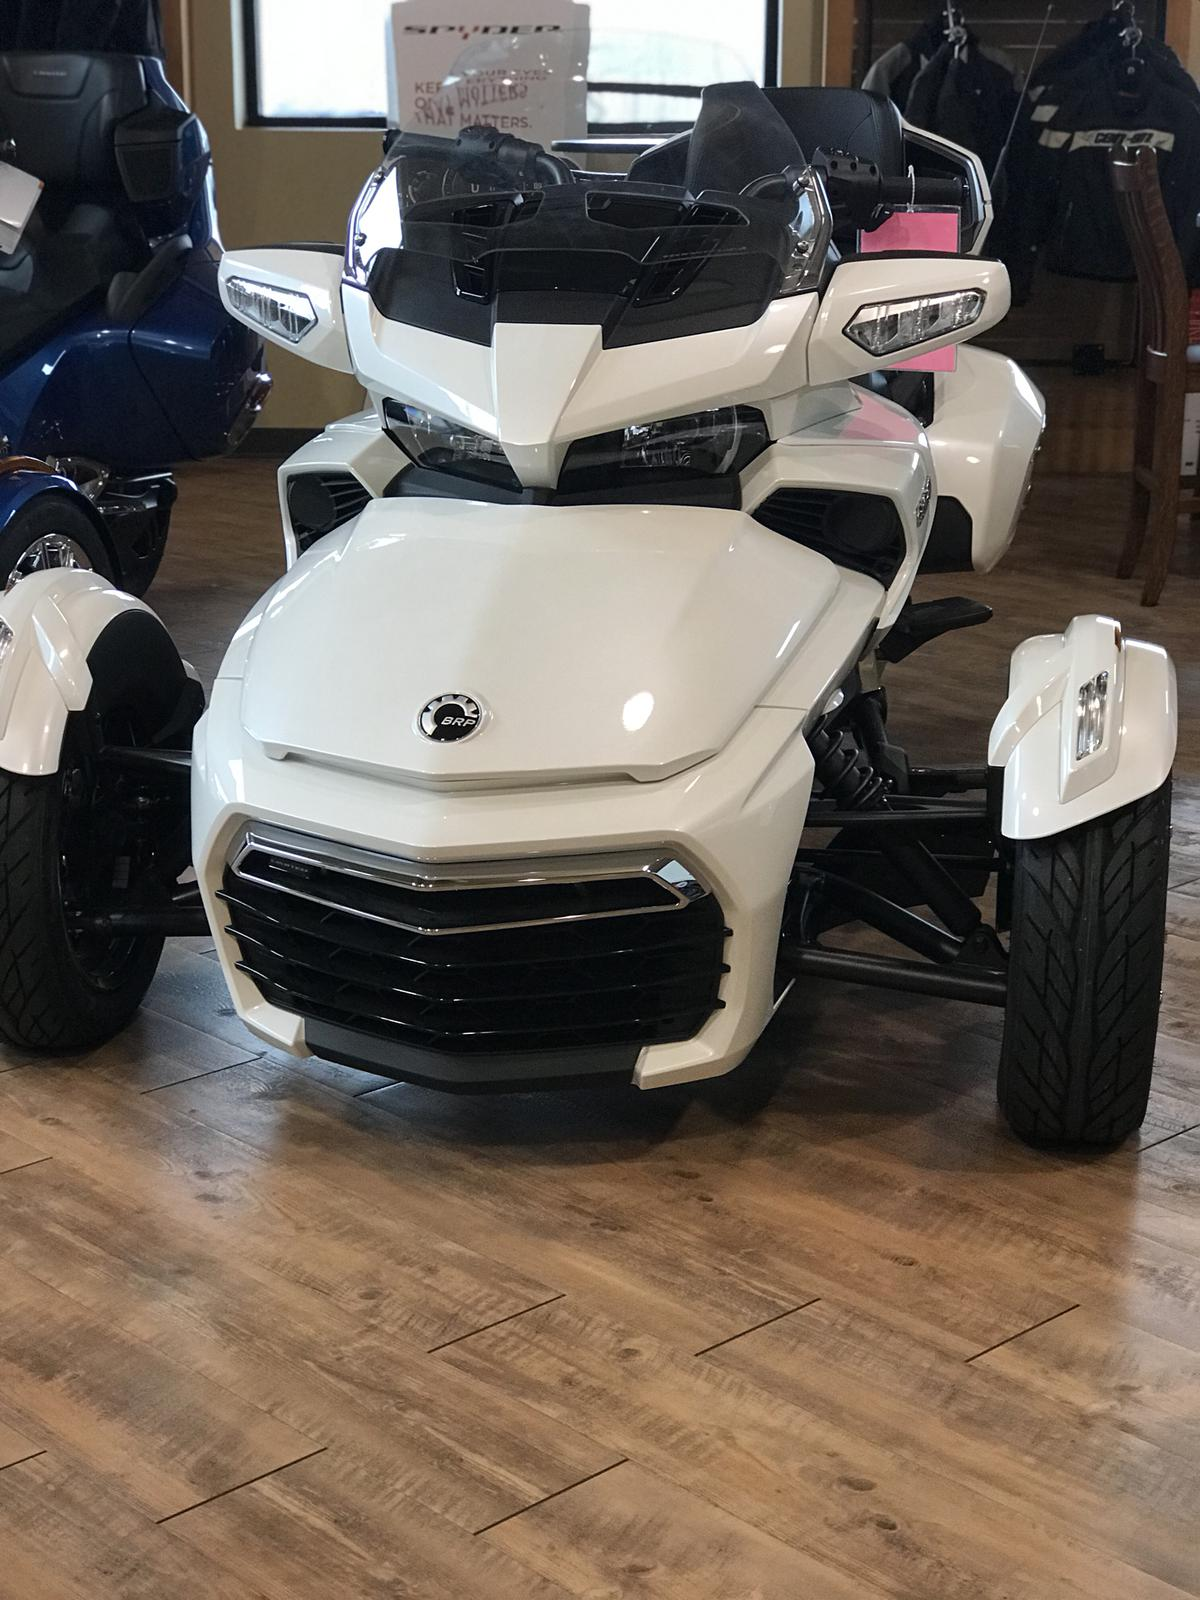 2017 Can Am Spyder F3 Limited SE6 for sale in Elma NY